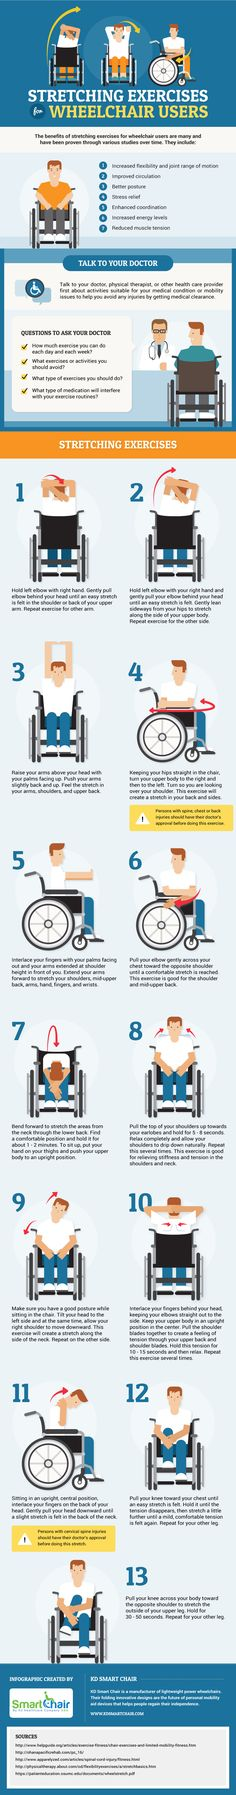 Stretching Exercises for Wheelchair Users [Infographic] – KD Smart Chair. >>> See it. Believe it. Do it. Watch thousands of spinal cord injury videos at SPINALpedia.com